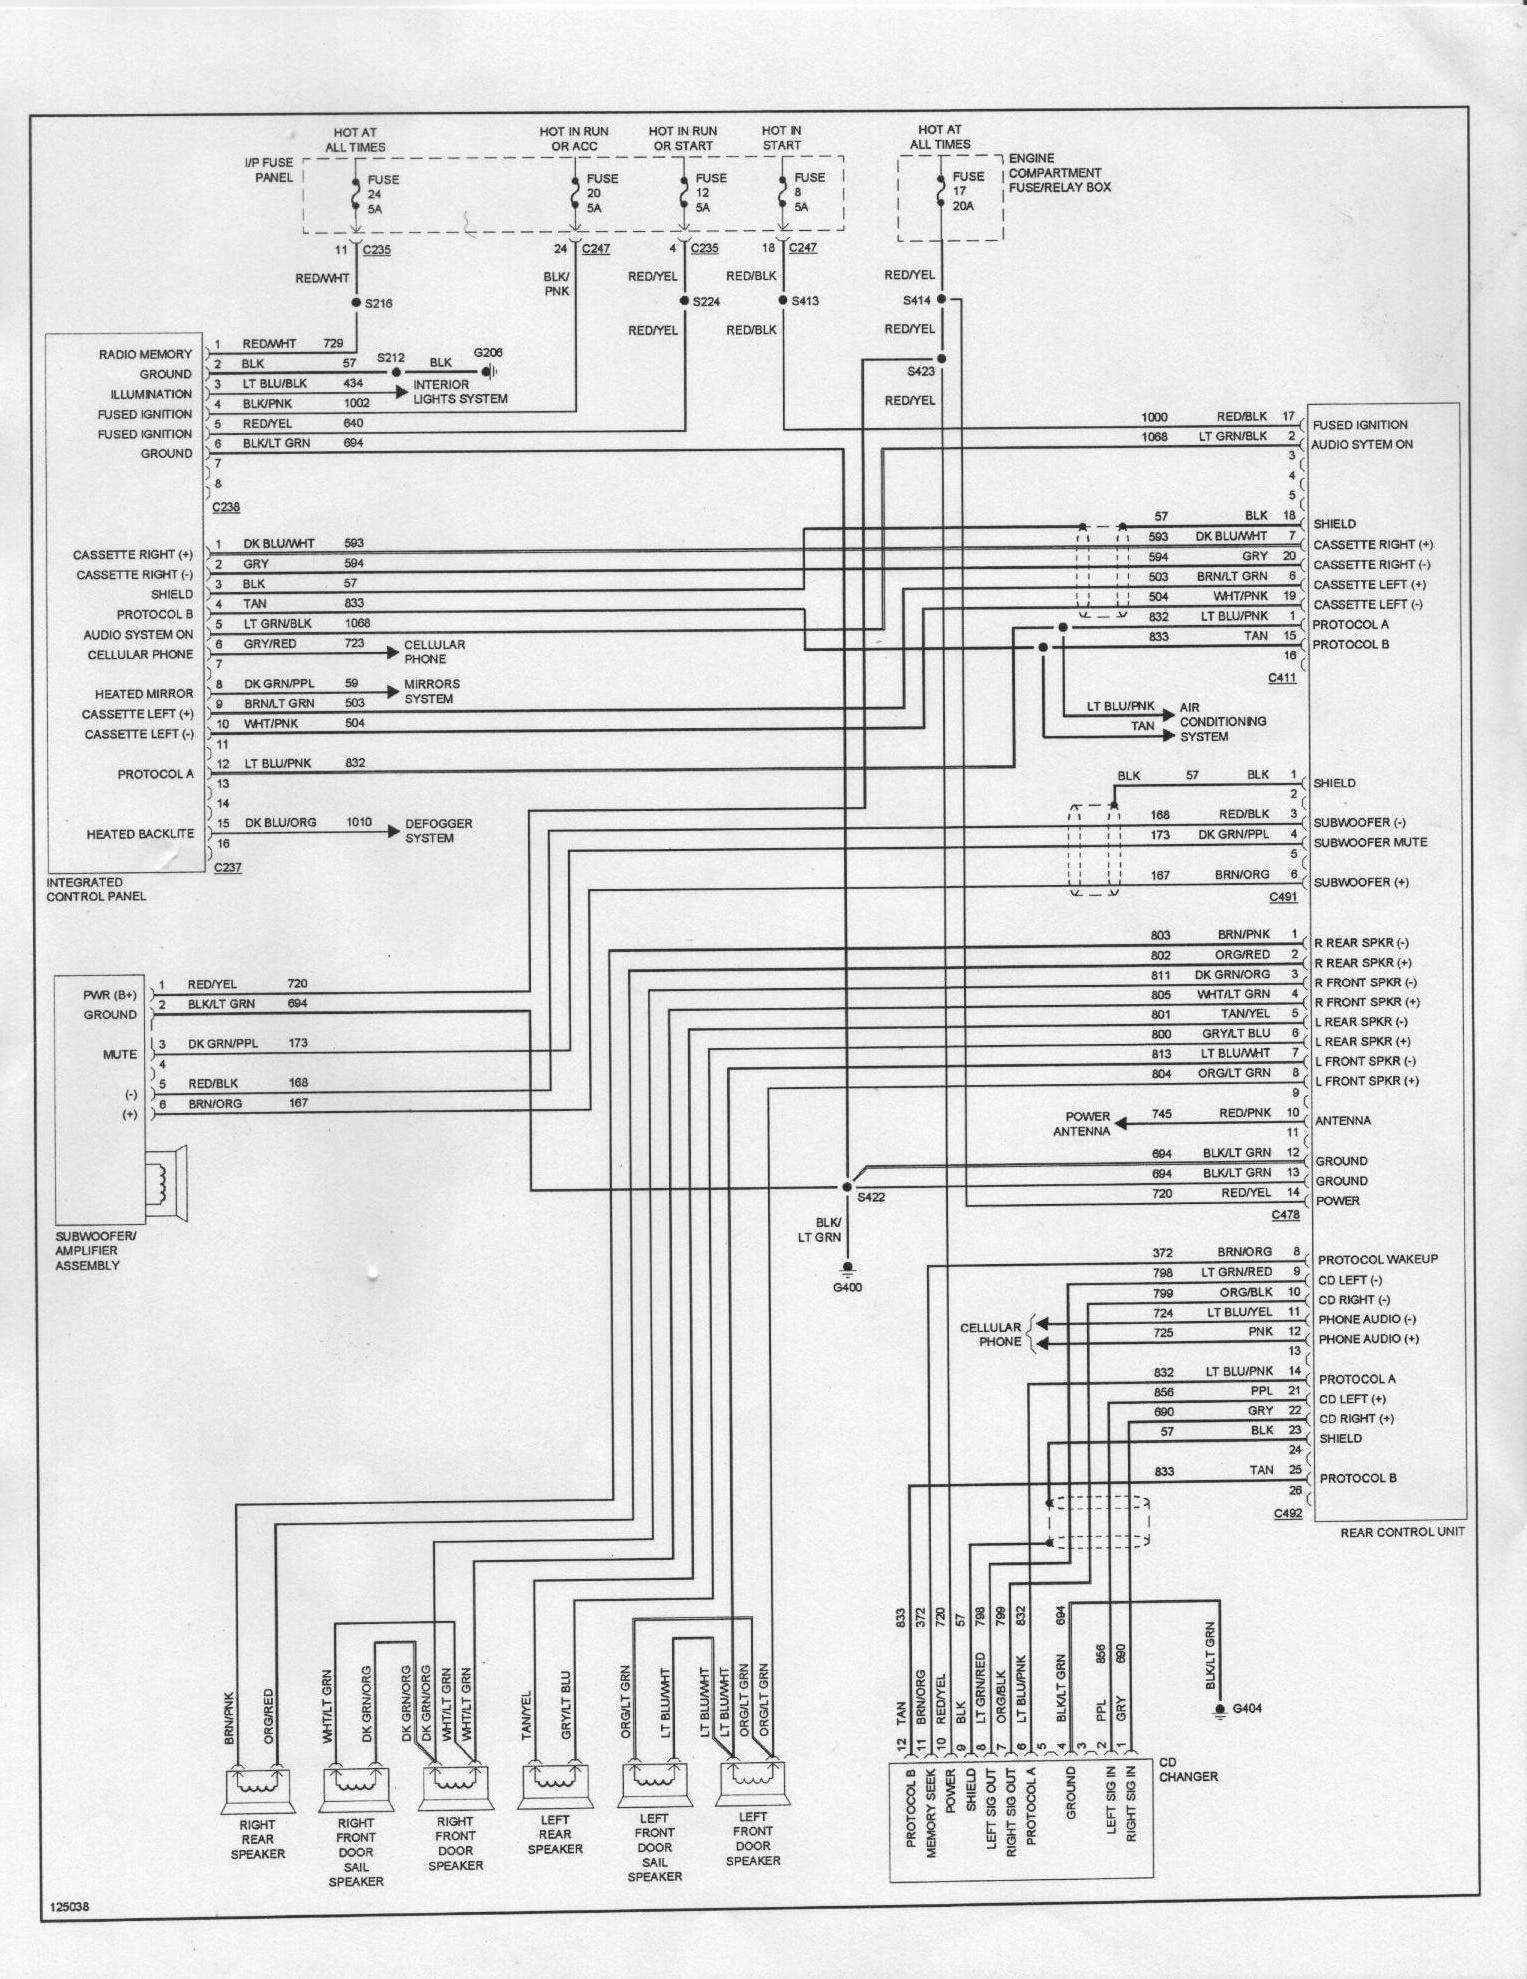 taurus wiring diagram wiring diagrams 44917d1173064914 wiring diagram ford taurus diagram96